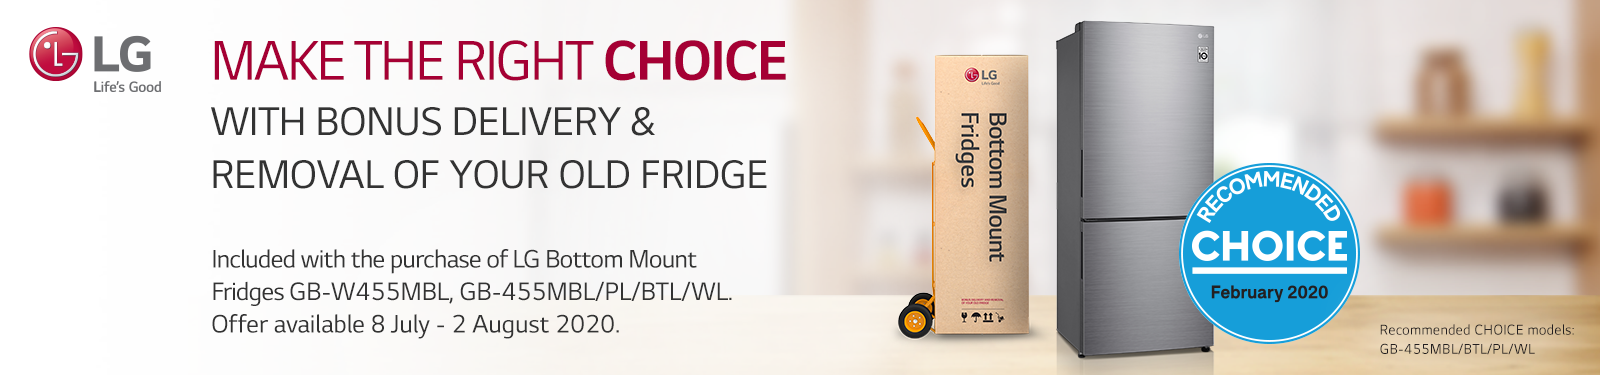 LG Bottom Mount Fridge - Free Delivery and Removal